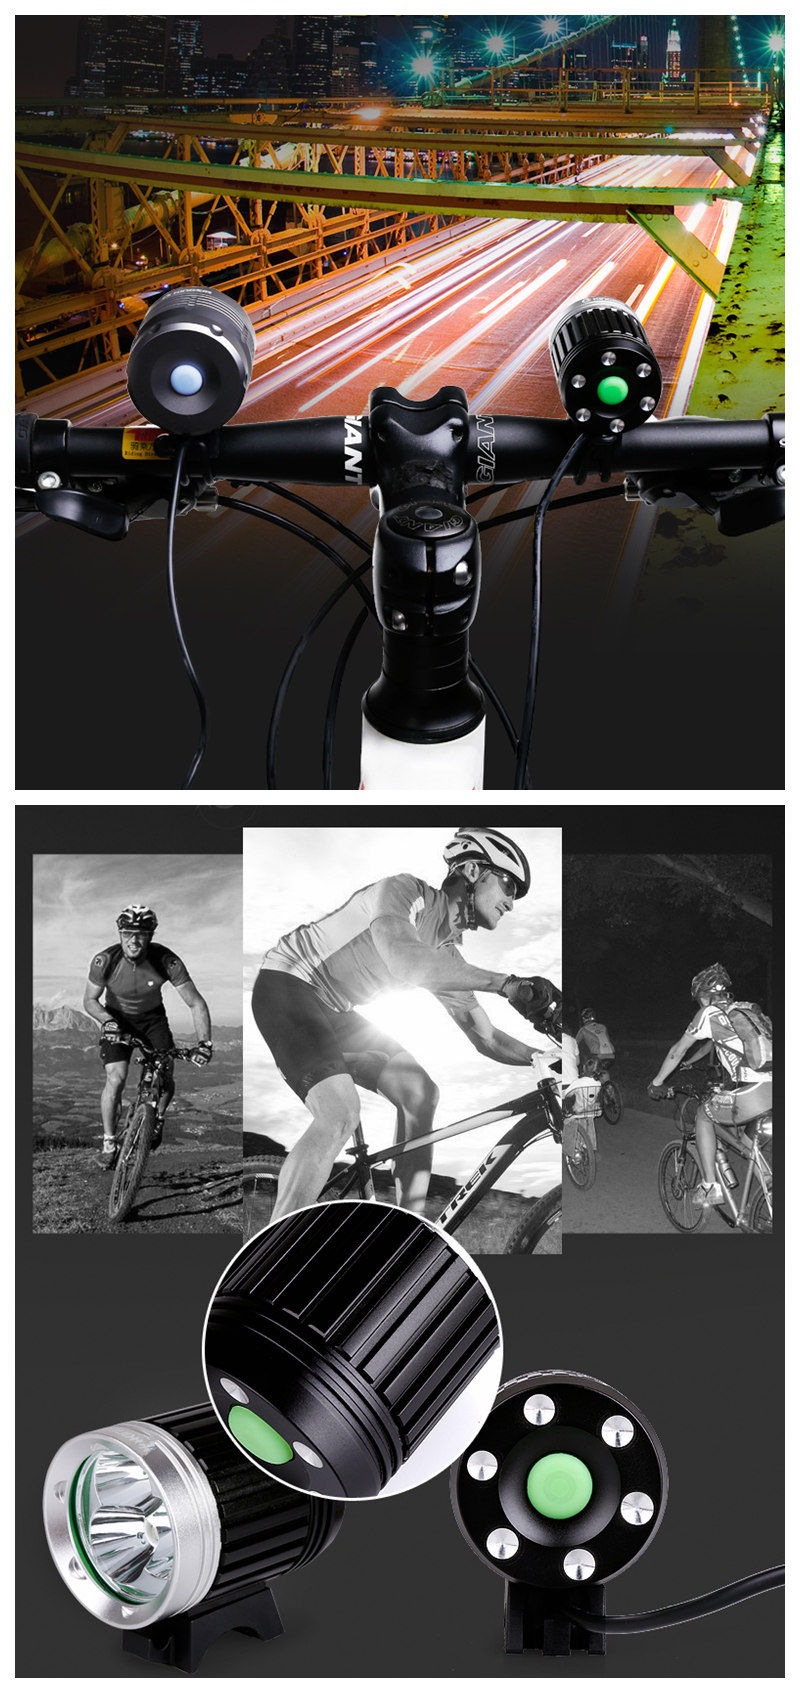 Waterproof USB Rechargeable Solar MTB Bicycle Light 600LM Night Riding Light X1